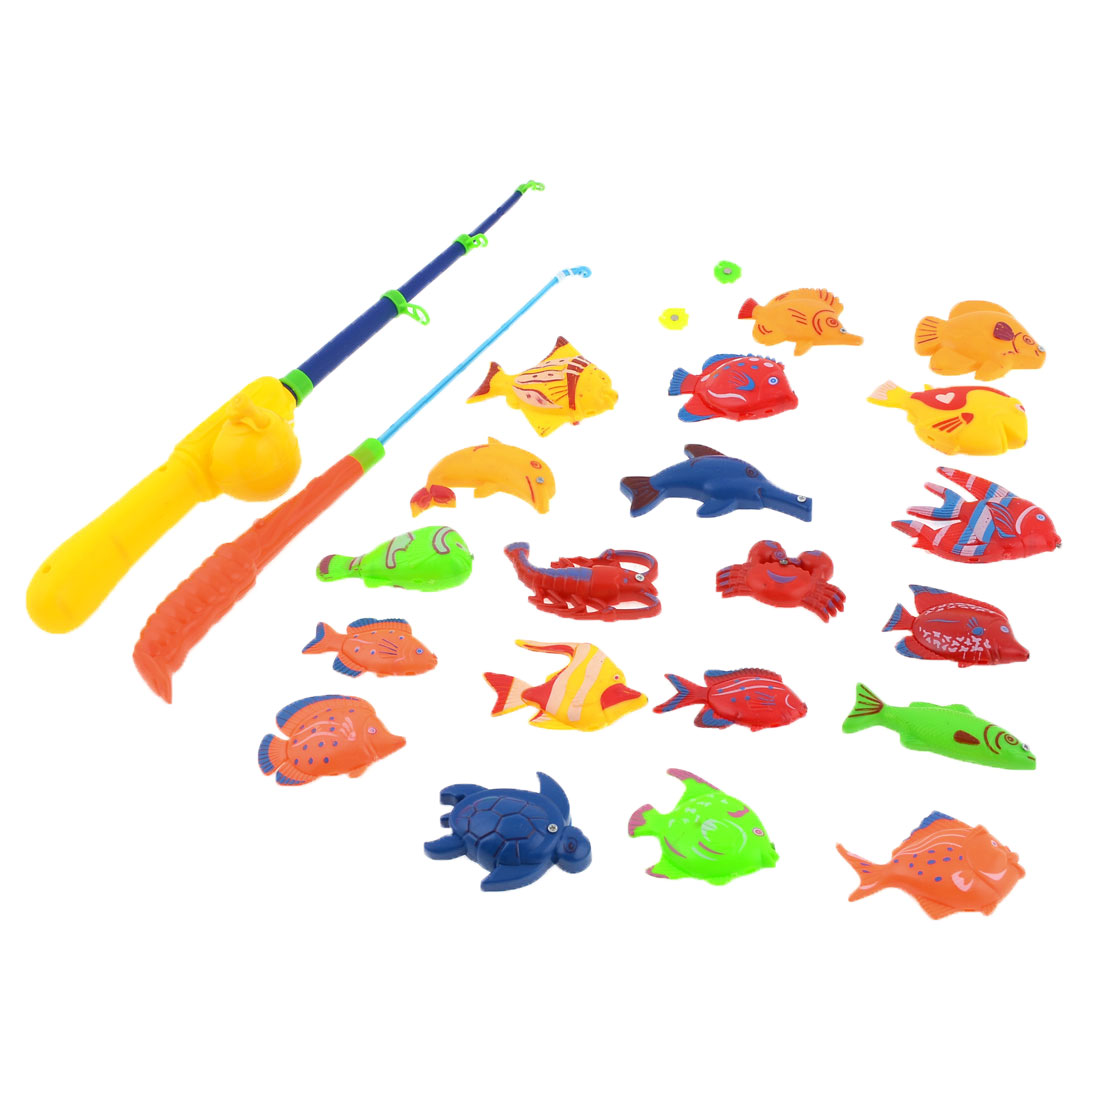 Child Colorful Plastic Magnet Crocodile Octopus Fishing Game Toy Set 22 in 1